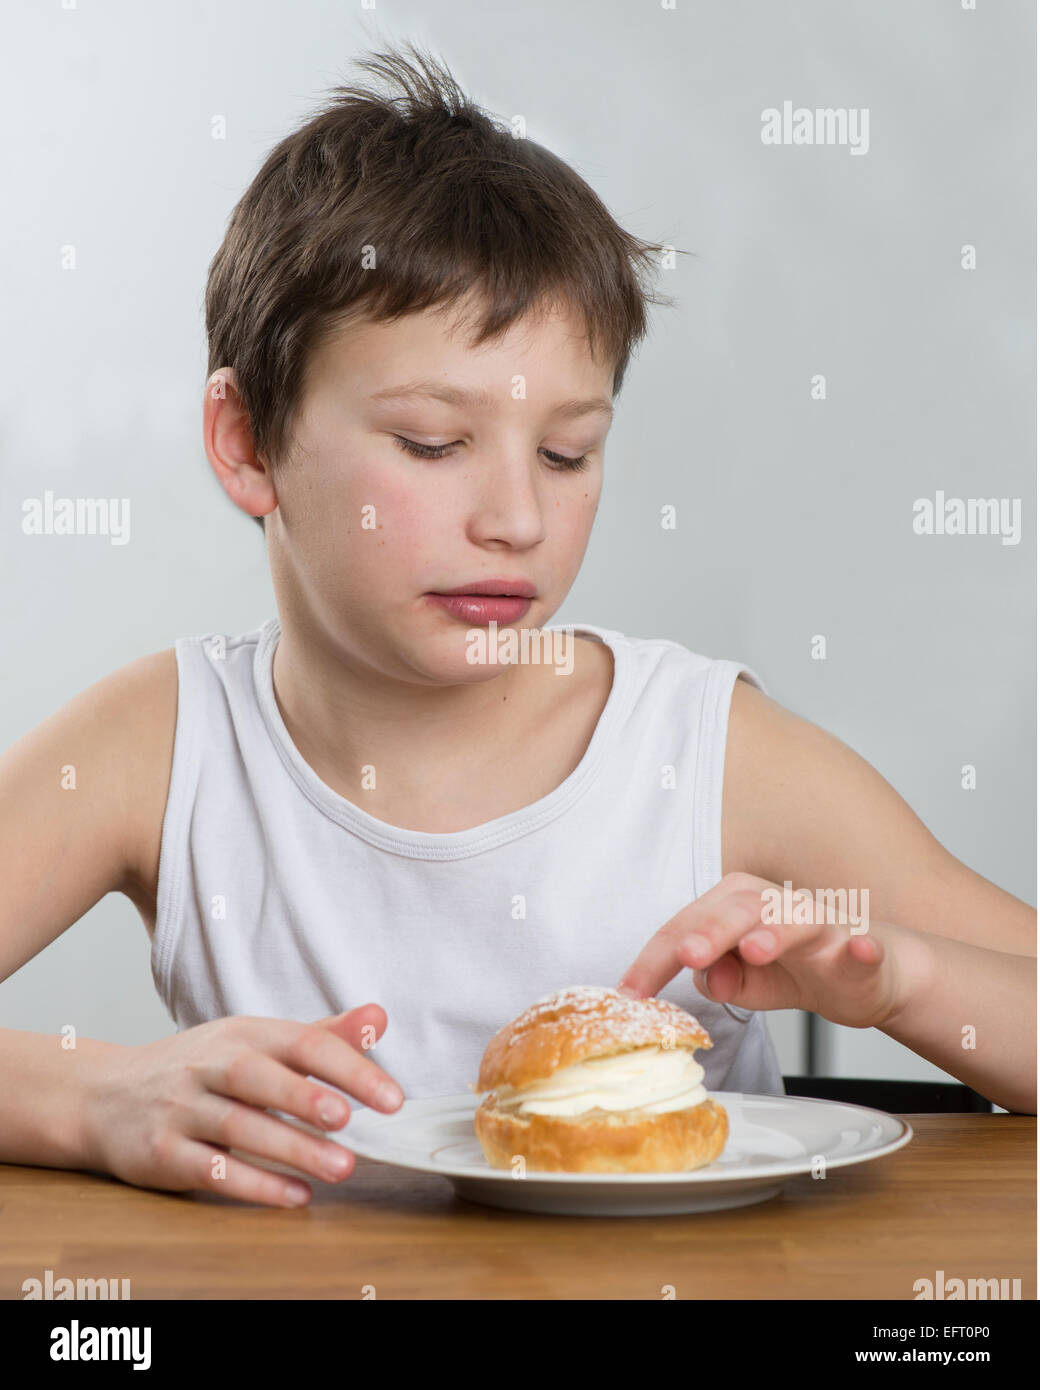 Young boy with a tasty cream bun - Stock Image